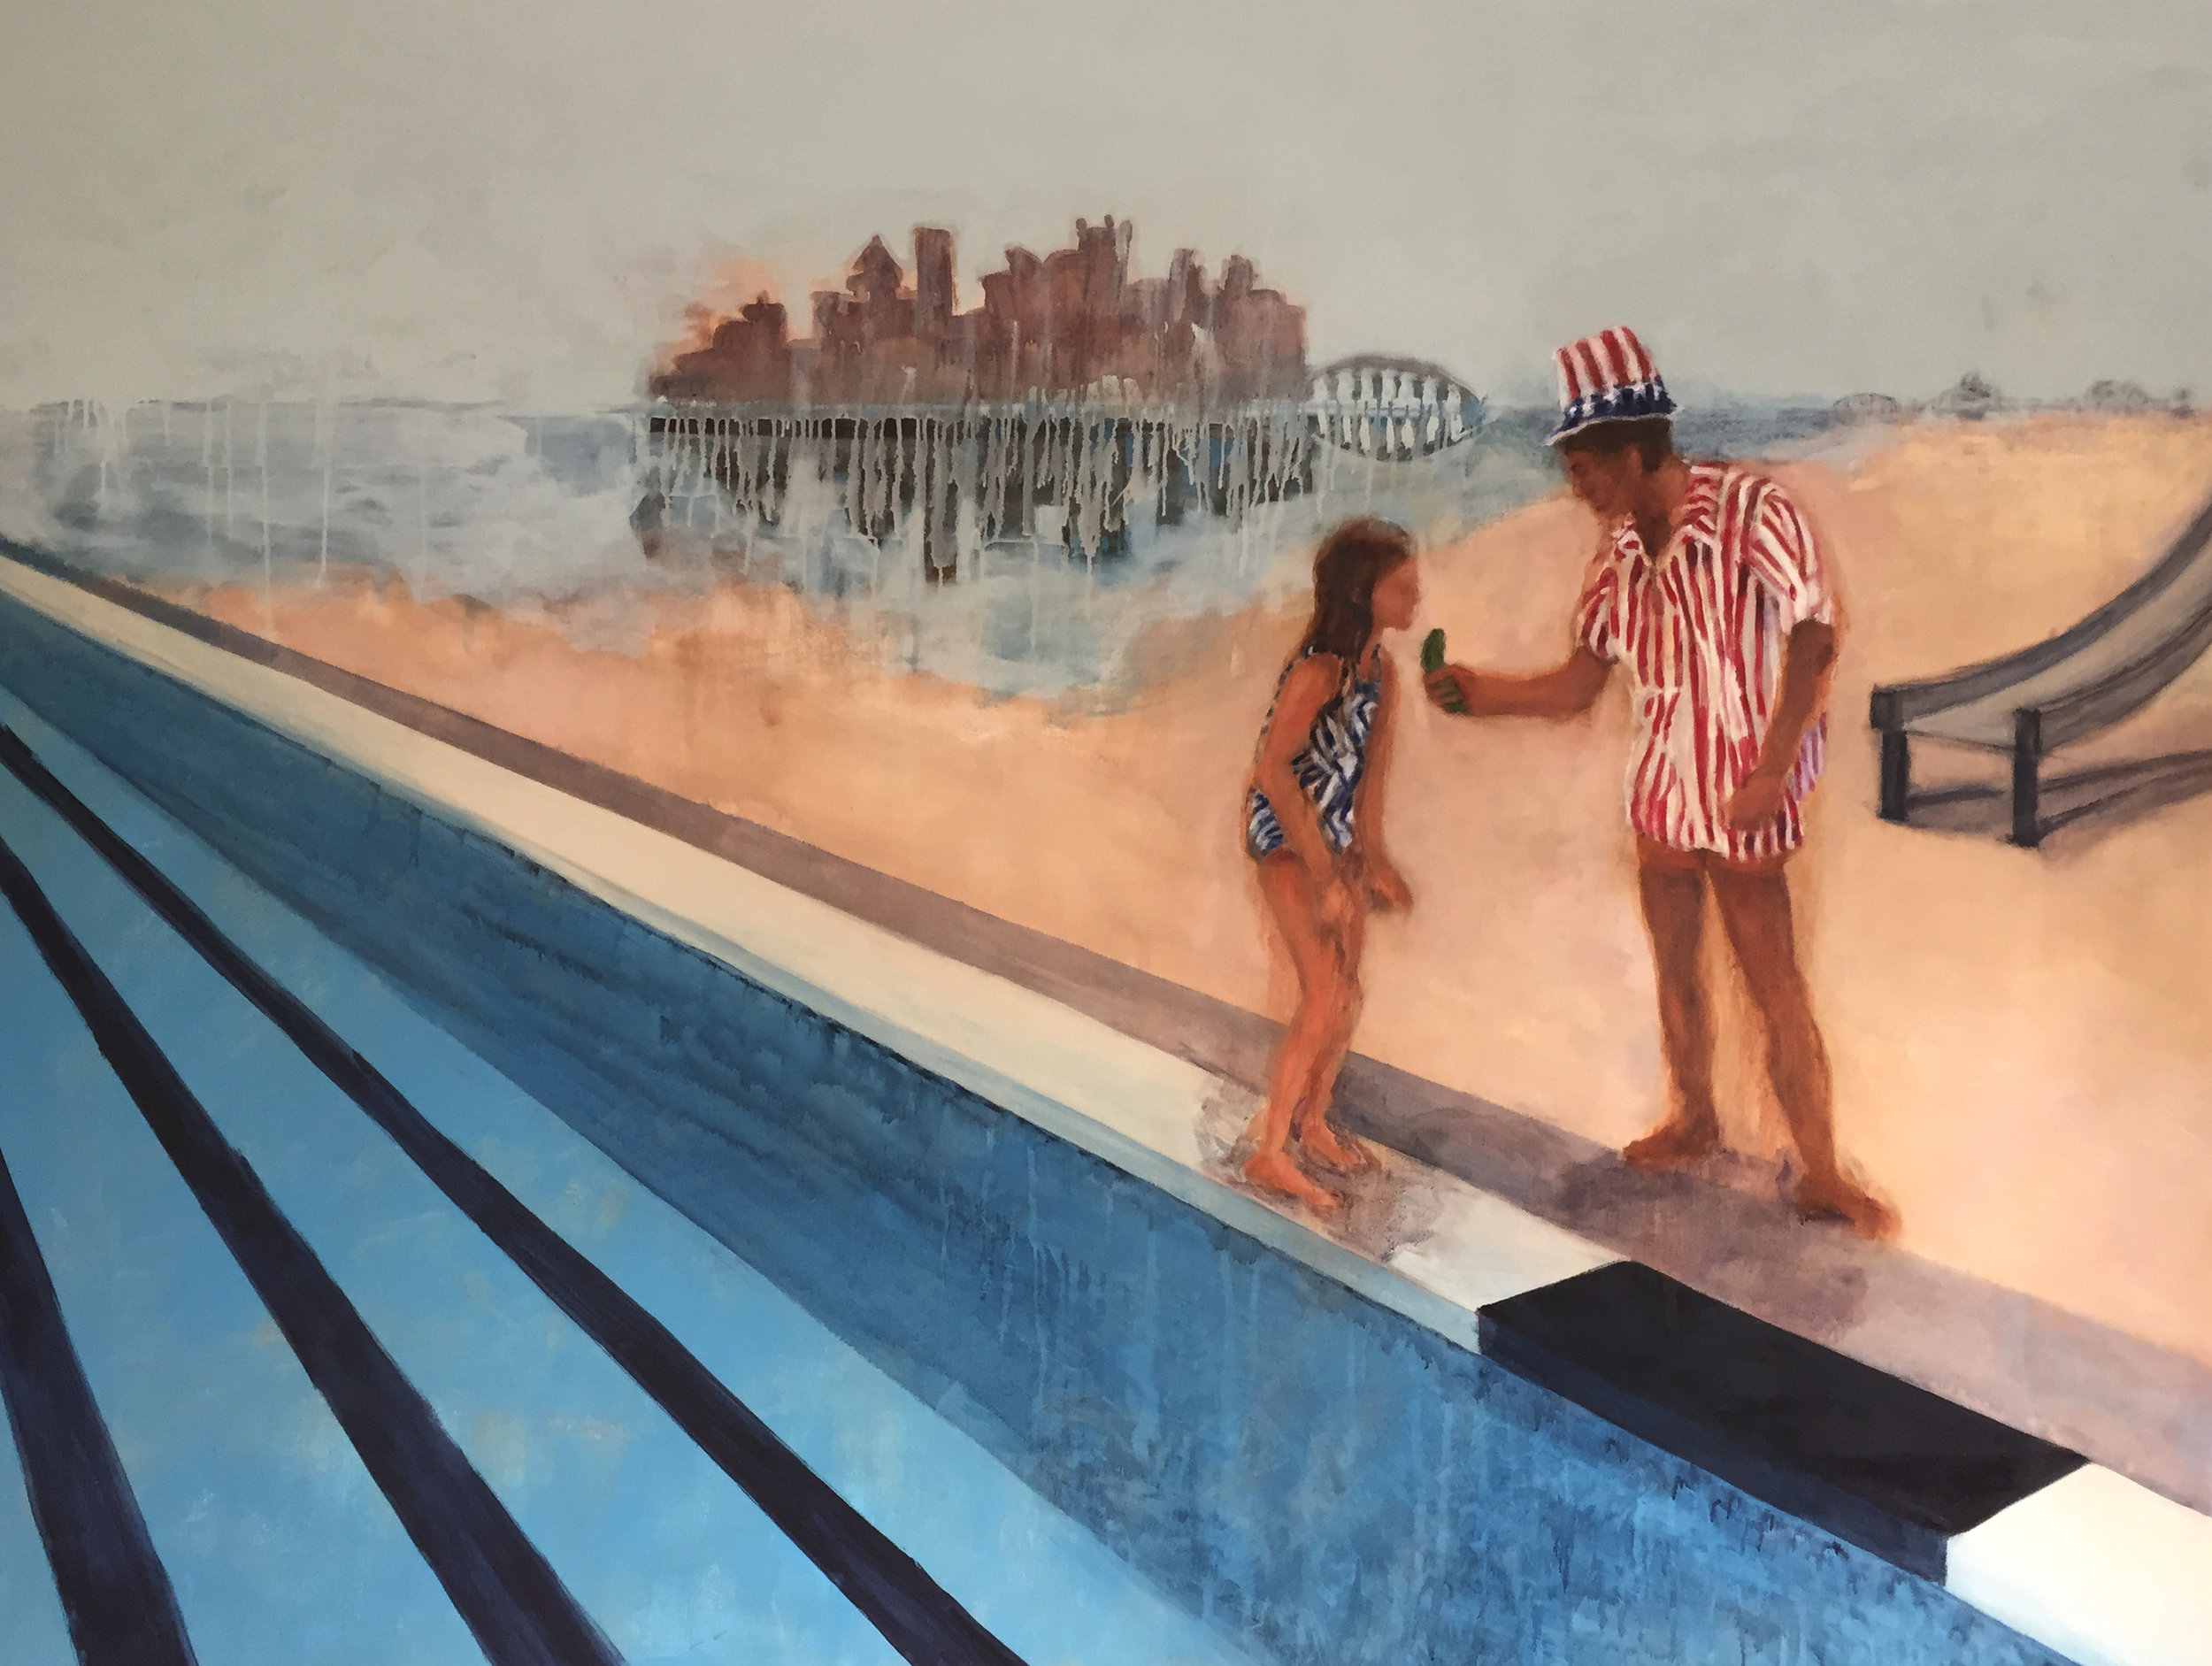 Amy Robson, P Town, Acrylic and oil on canvas, 148 cm x 210 cm x 4 cm, http://amyrobson.co.uk/portfolio_tag/home/